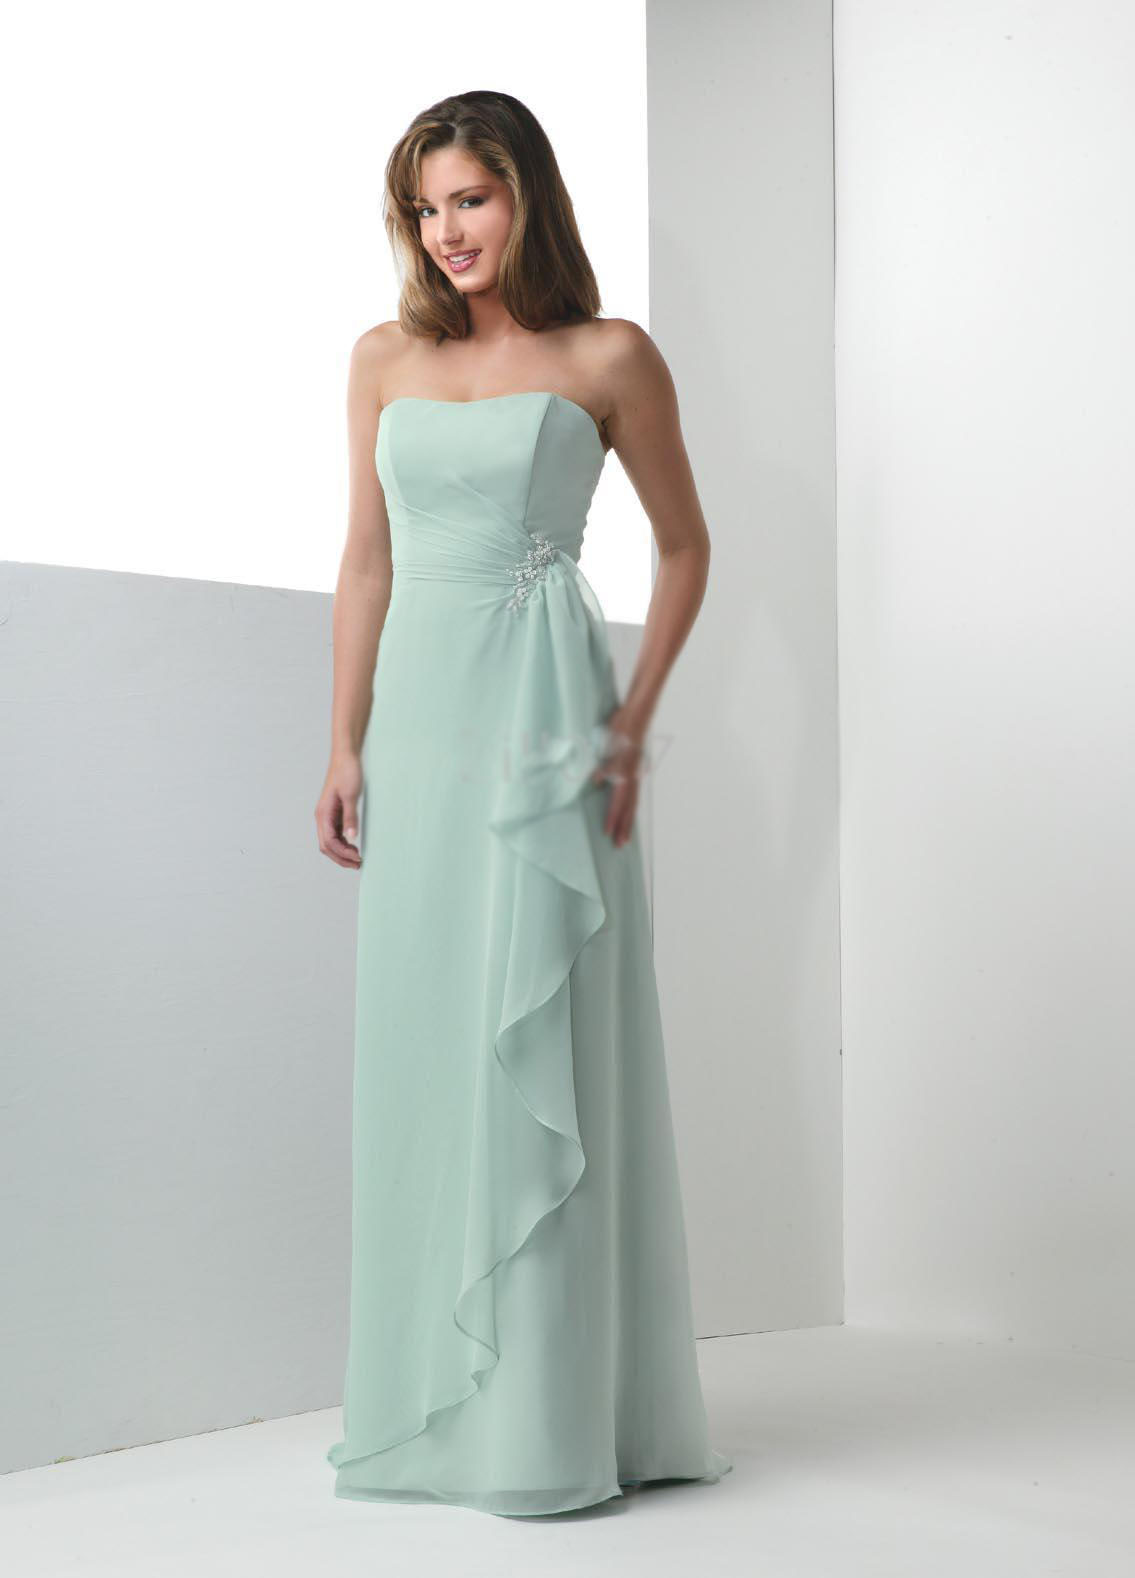 Evening Dresses Patterns Free | Dress images